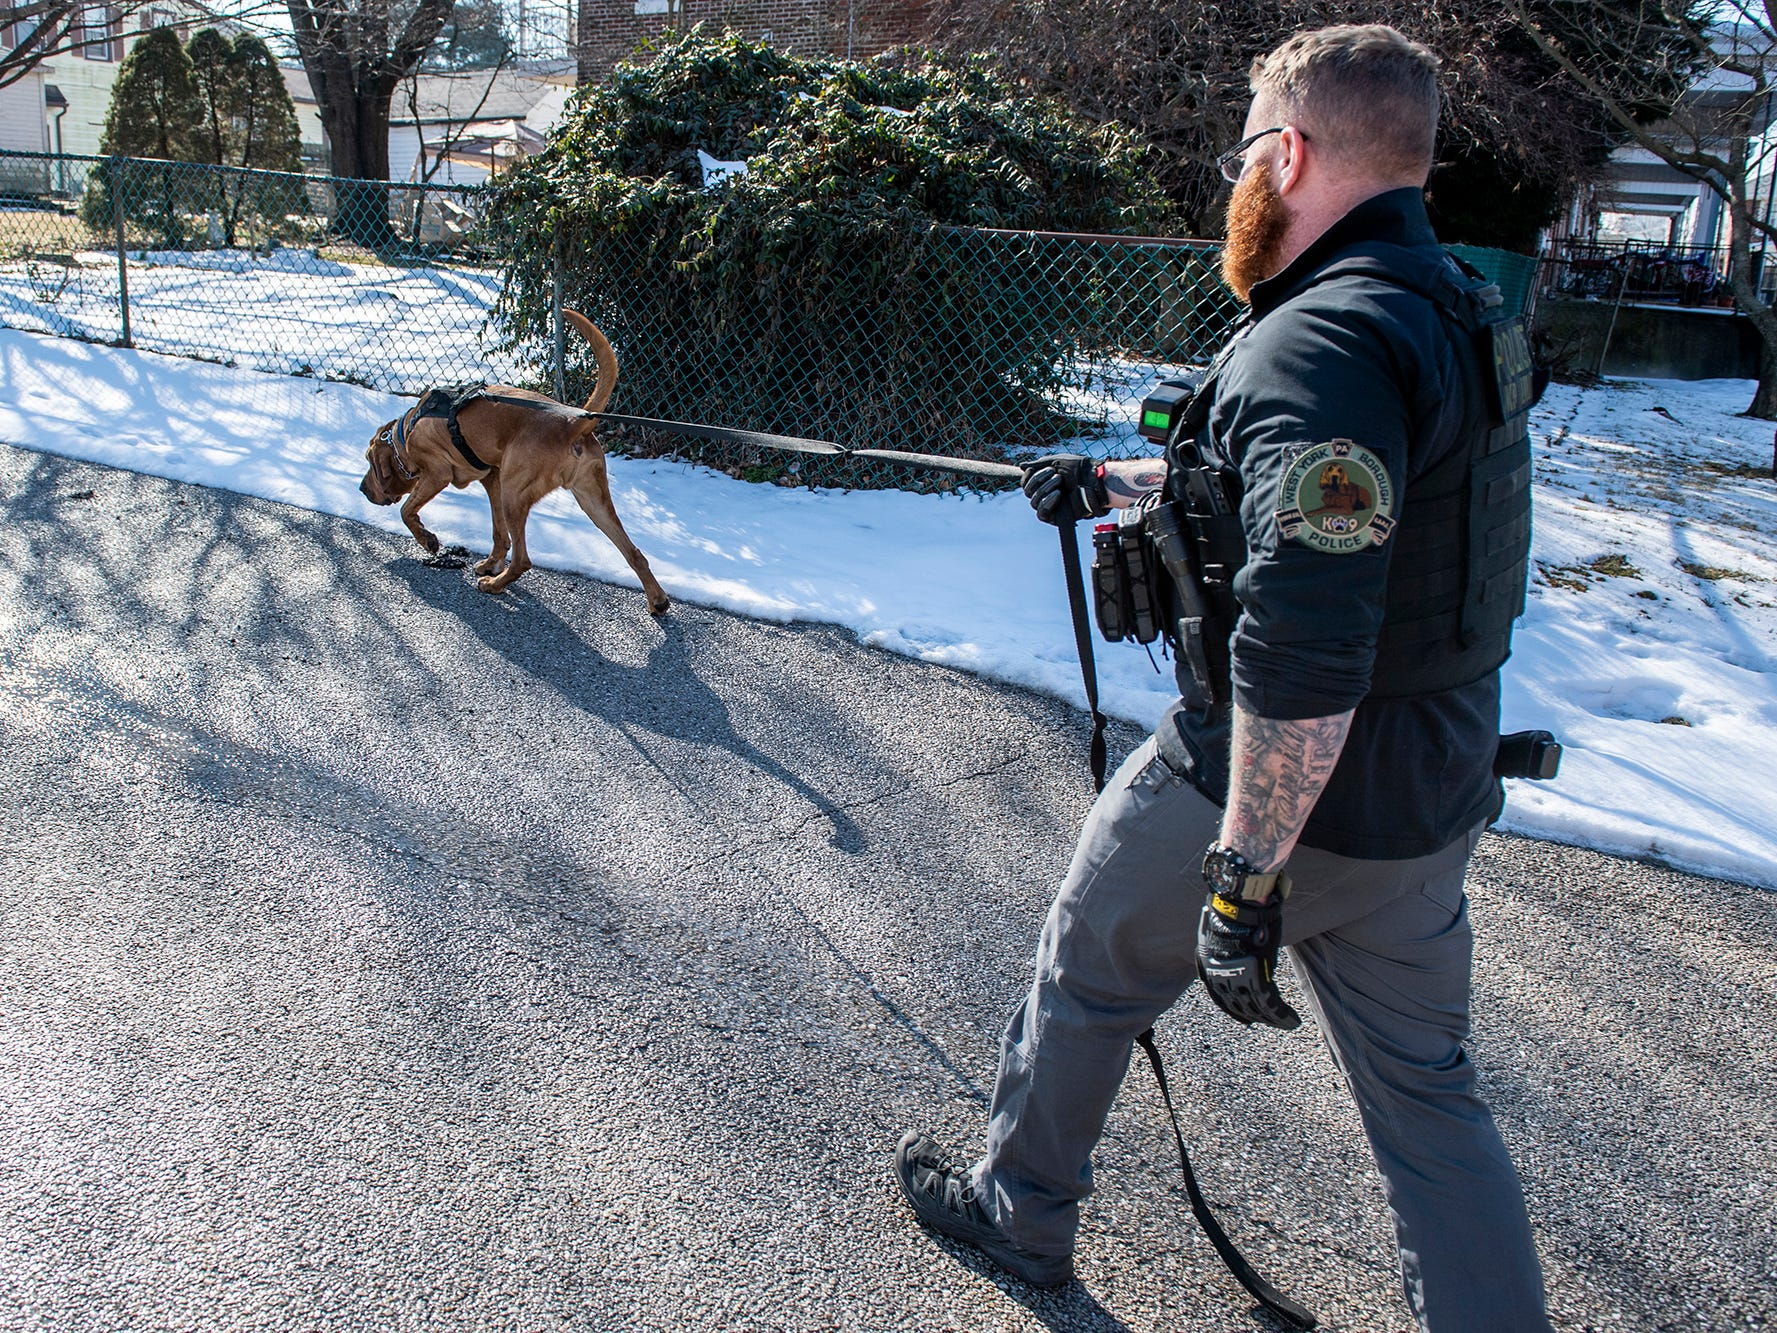 Detective Prince leads Cpl. Scott Musselman on a trail during a demonstration in front of West York Borough Police Department's station, Monday, Feb. 4, 2019. West York Borough's Detective Prince - who just turned 2-years old - has helped county law enforcement in 30 cases over the past year.